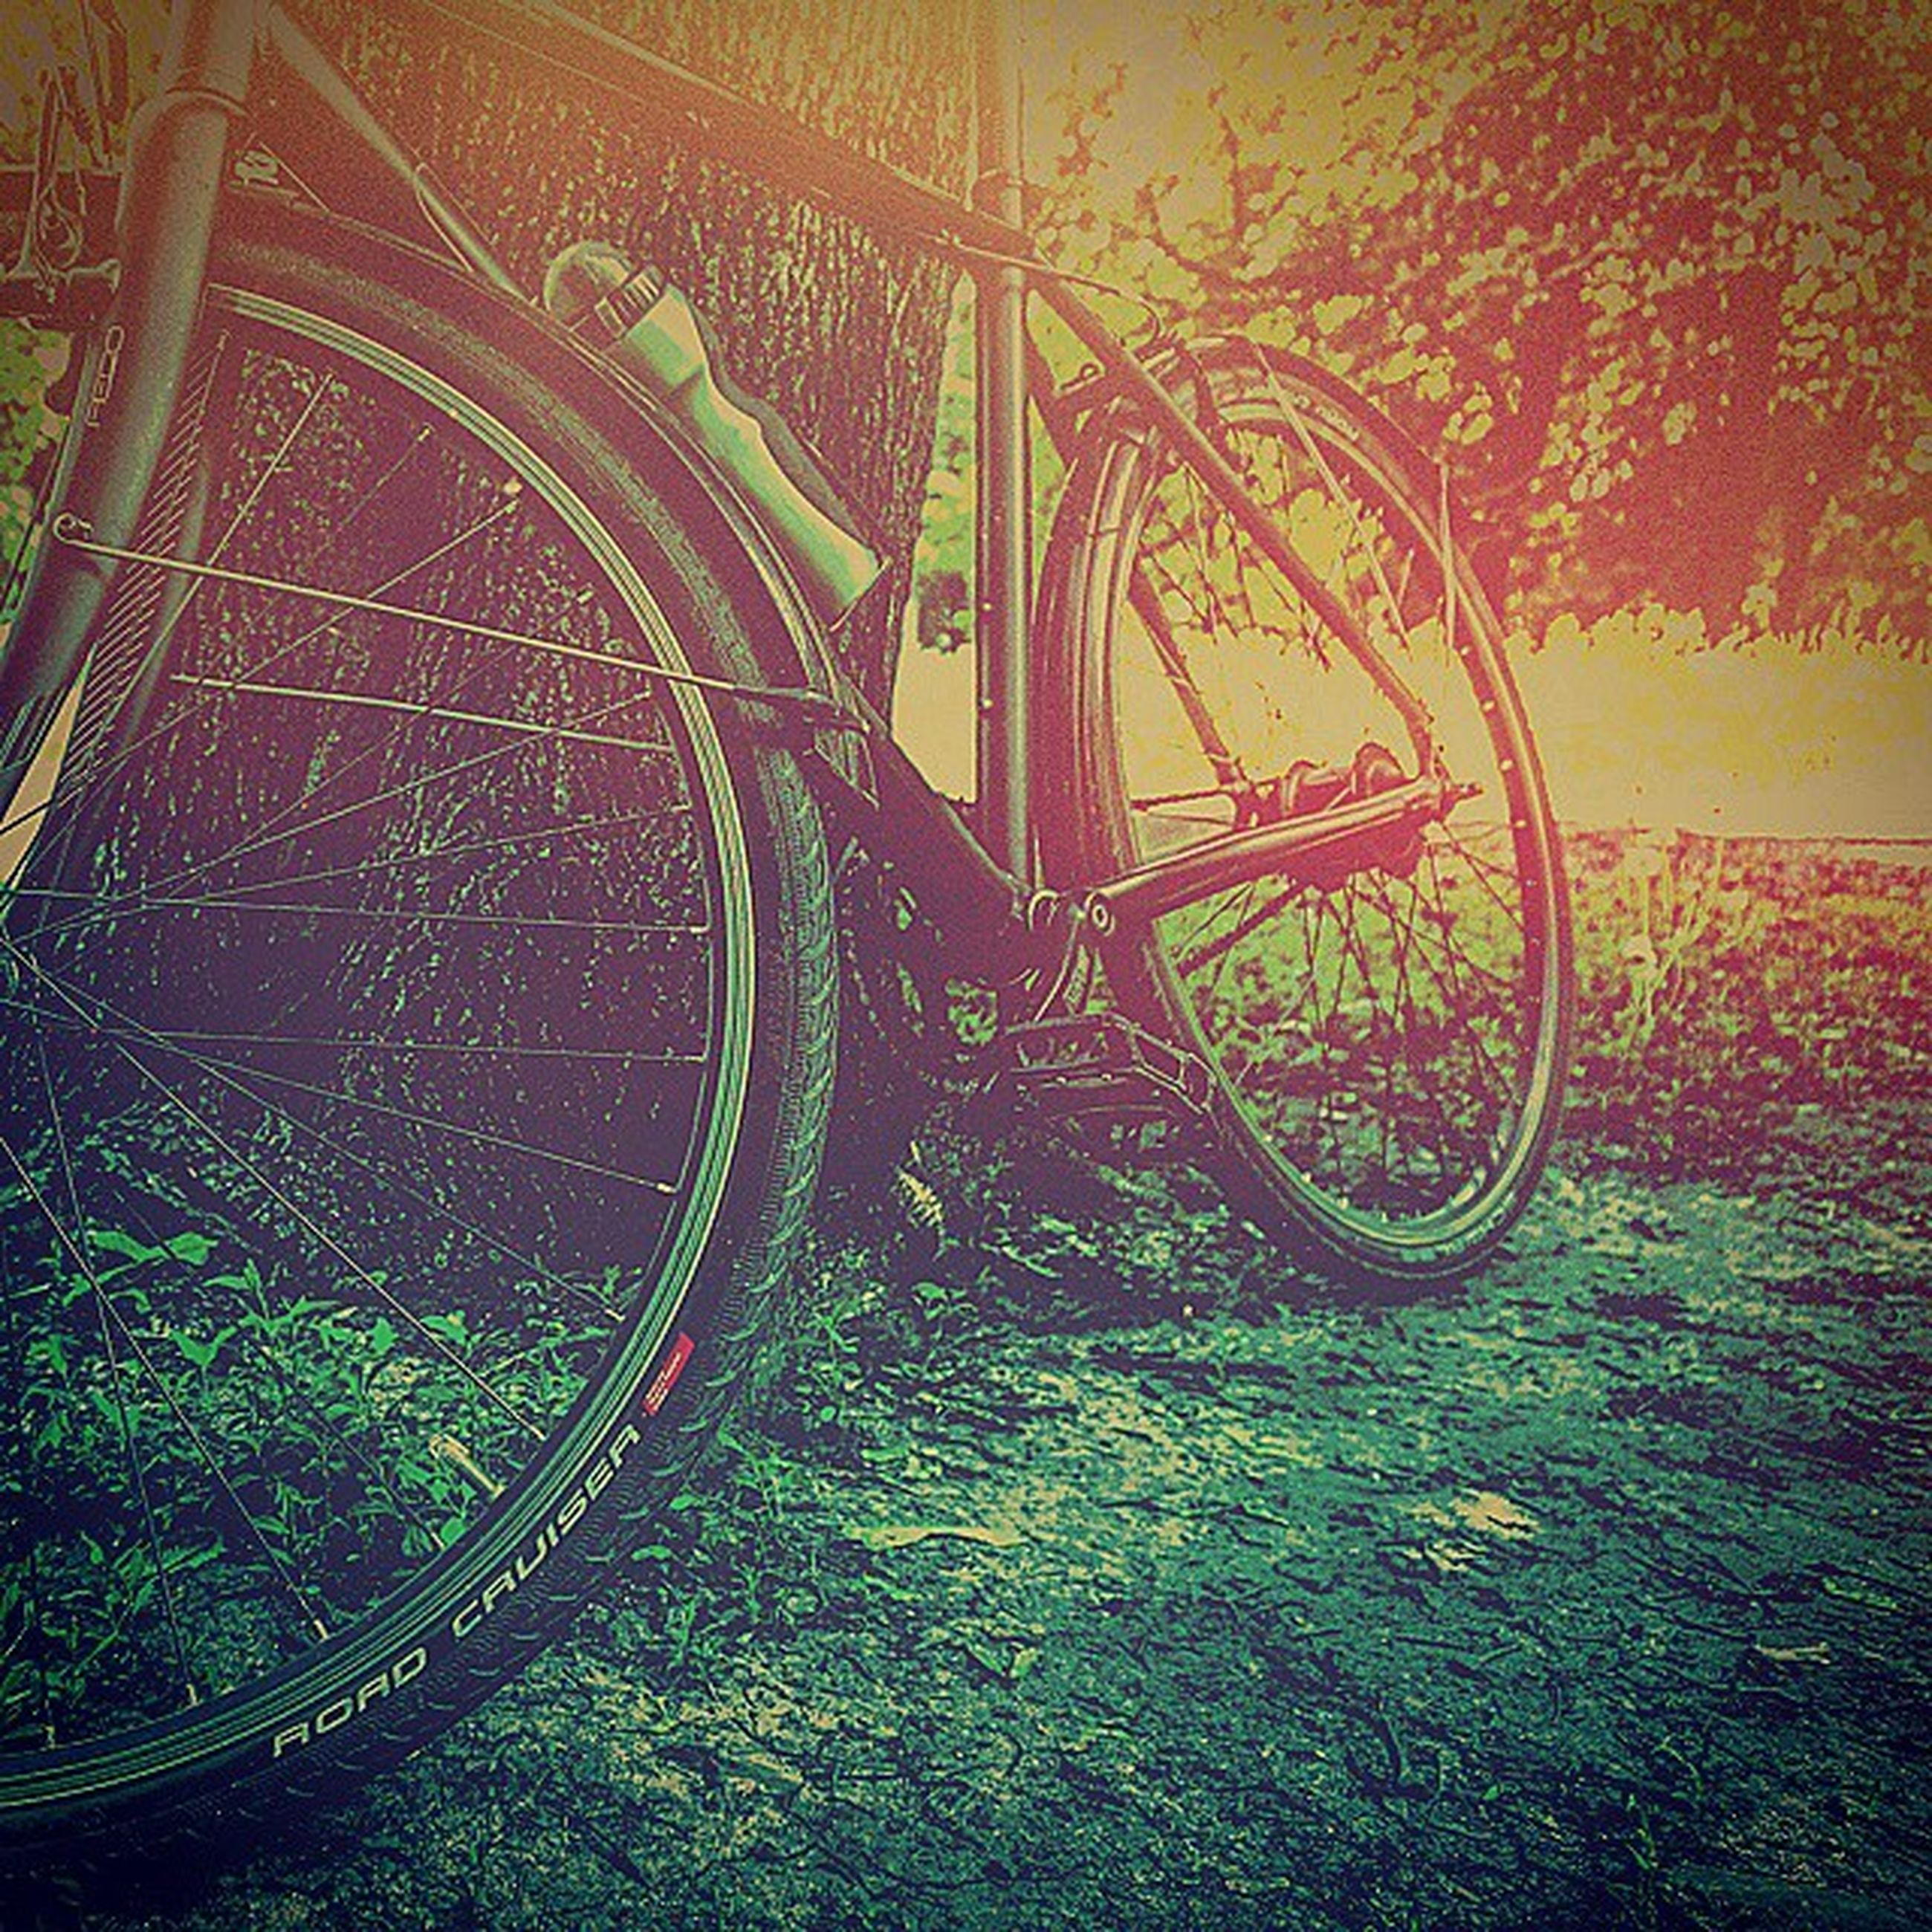 grass, bicycle, plant, no people, wall - building feature, growth, nature, outdoors, day, field, sunlight, transportation, close-up, wheel, green color, land vehicle, high angle view, tranquility, built structure, old